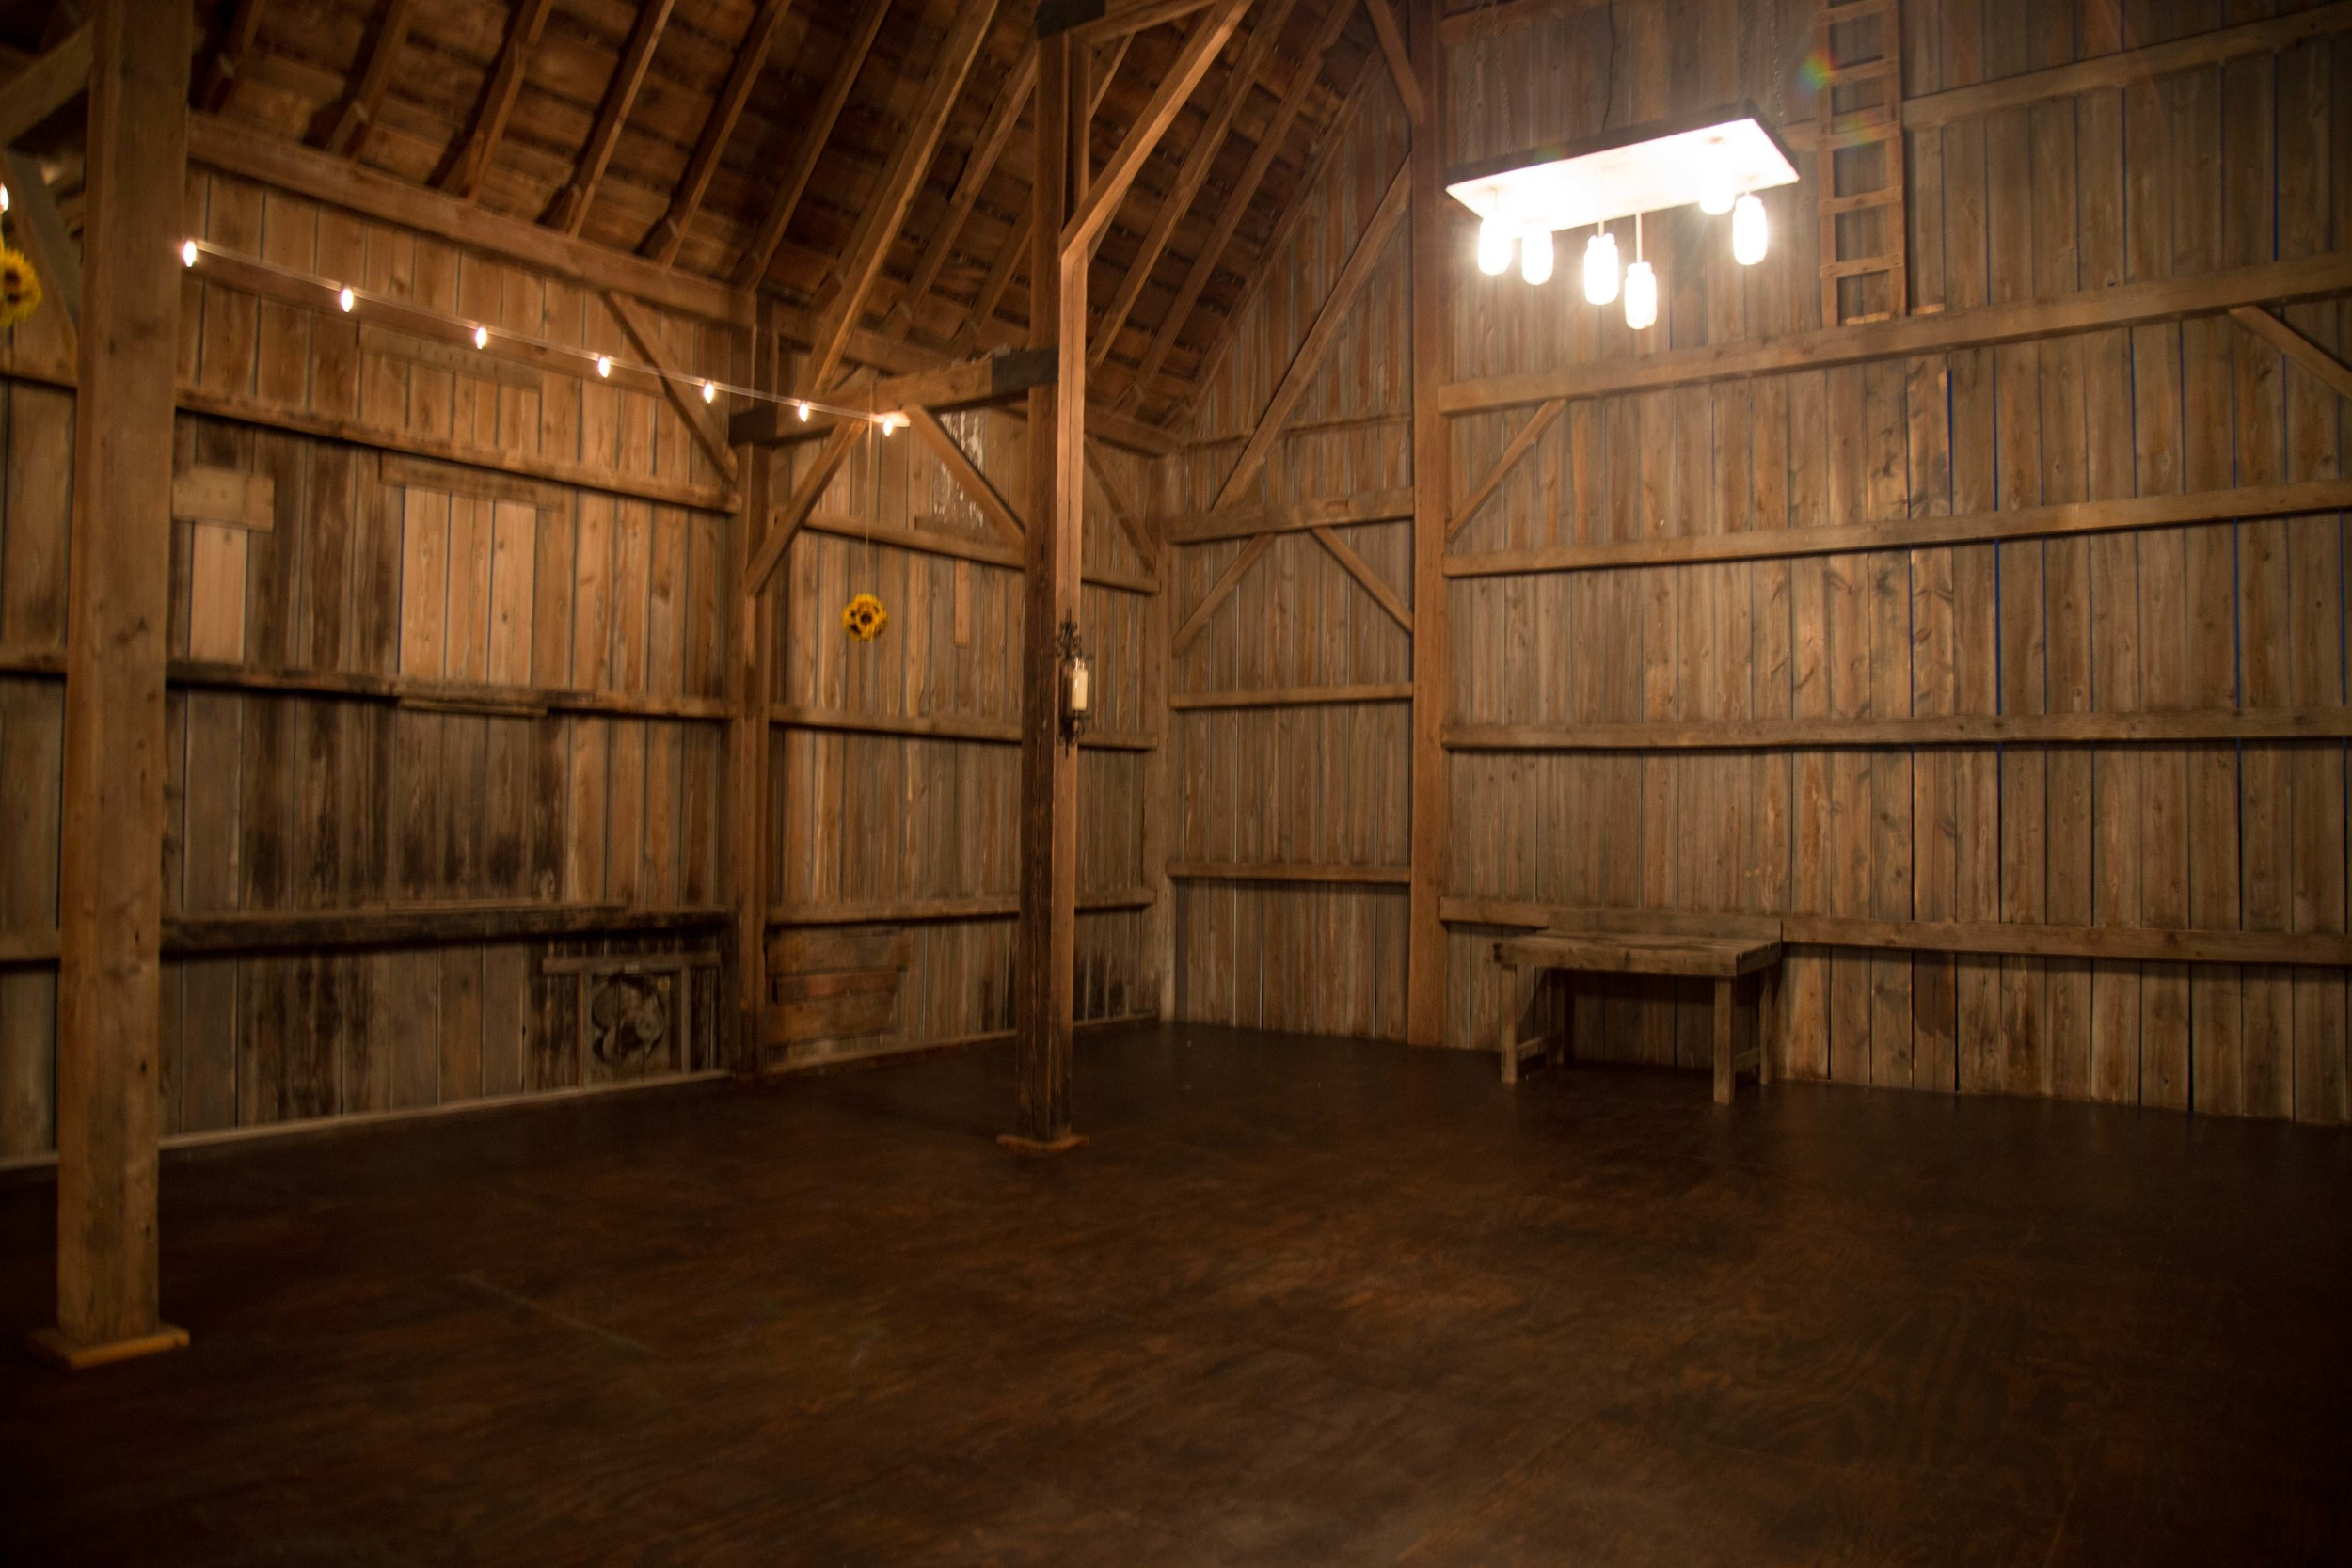 6_27-Bare_Barn_Walls_6204 2.jpg